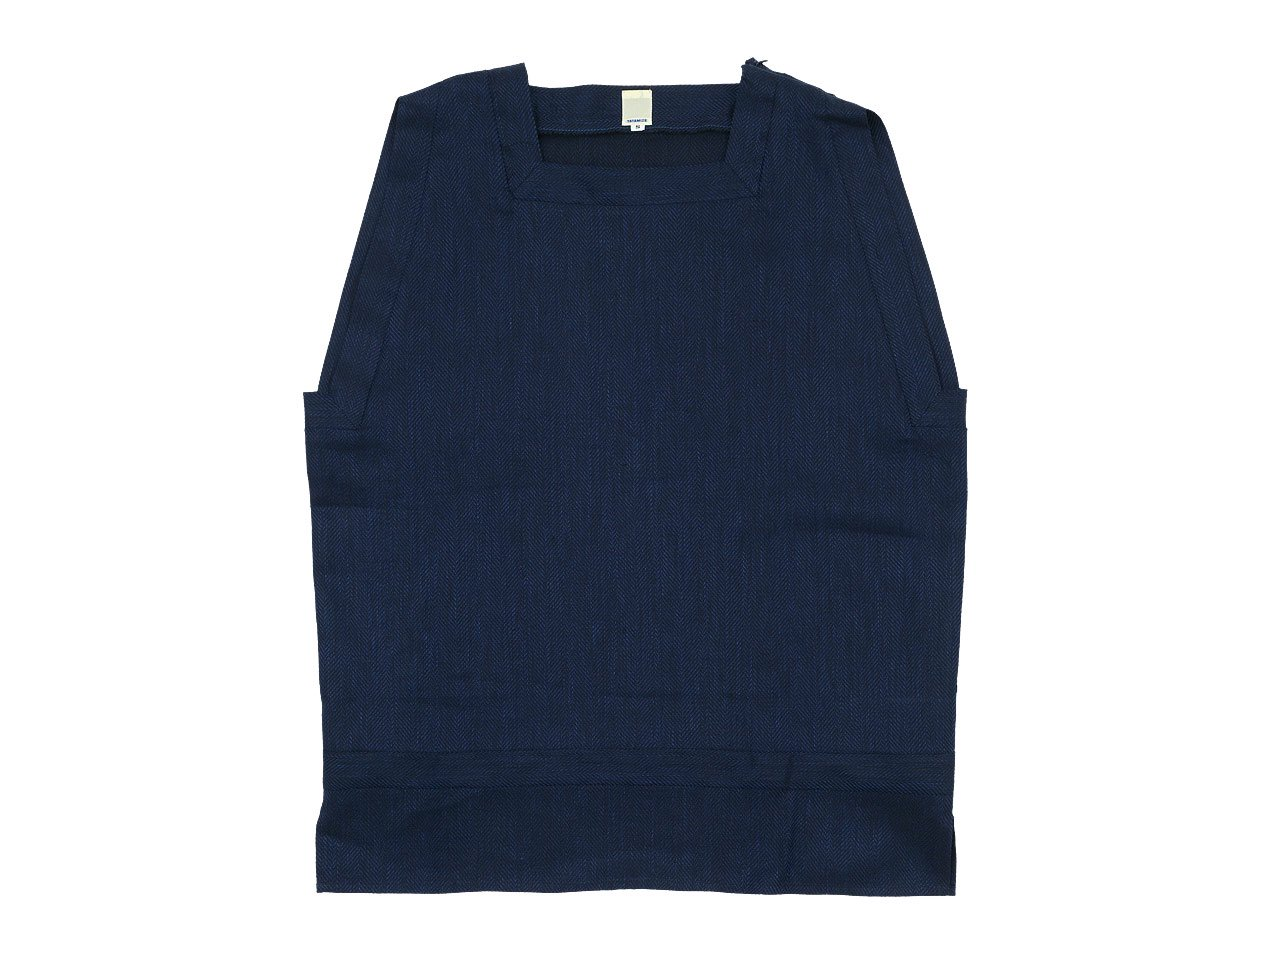 TATAMIZE SQUARE VEST NAVY